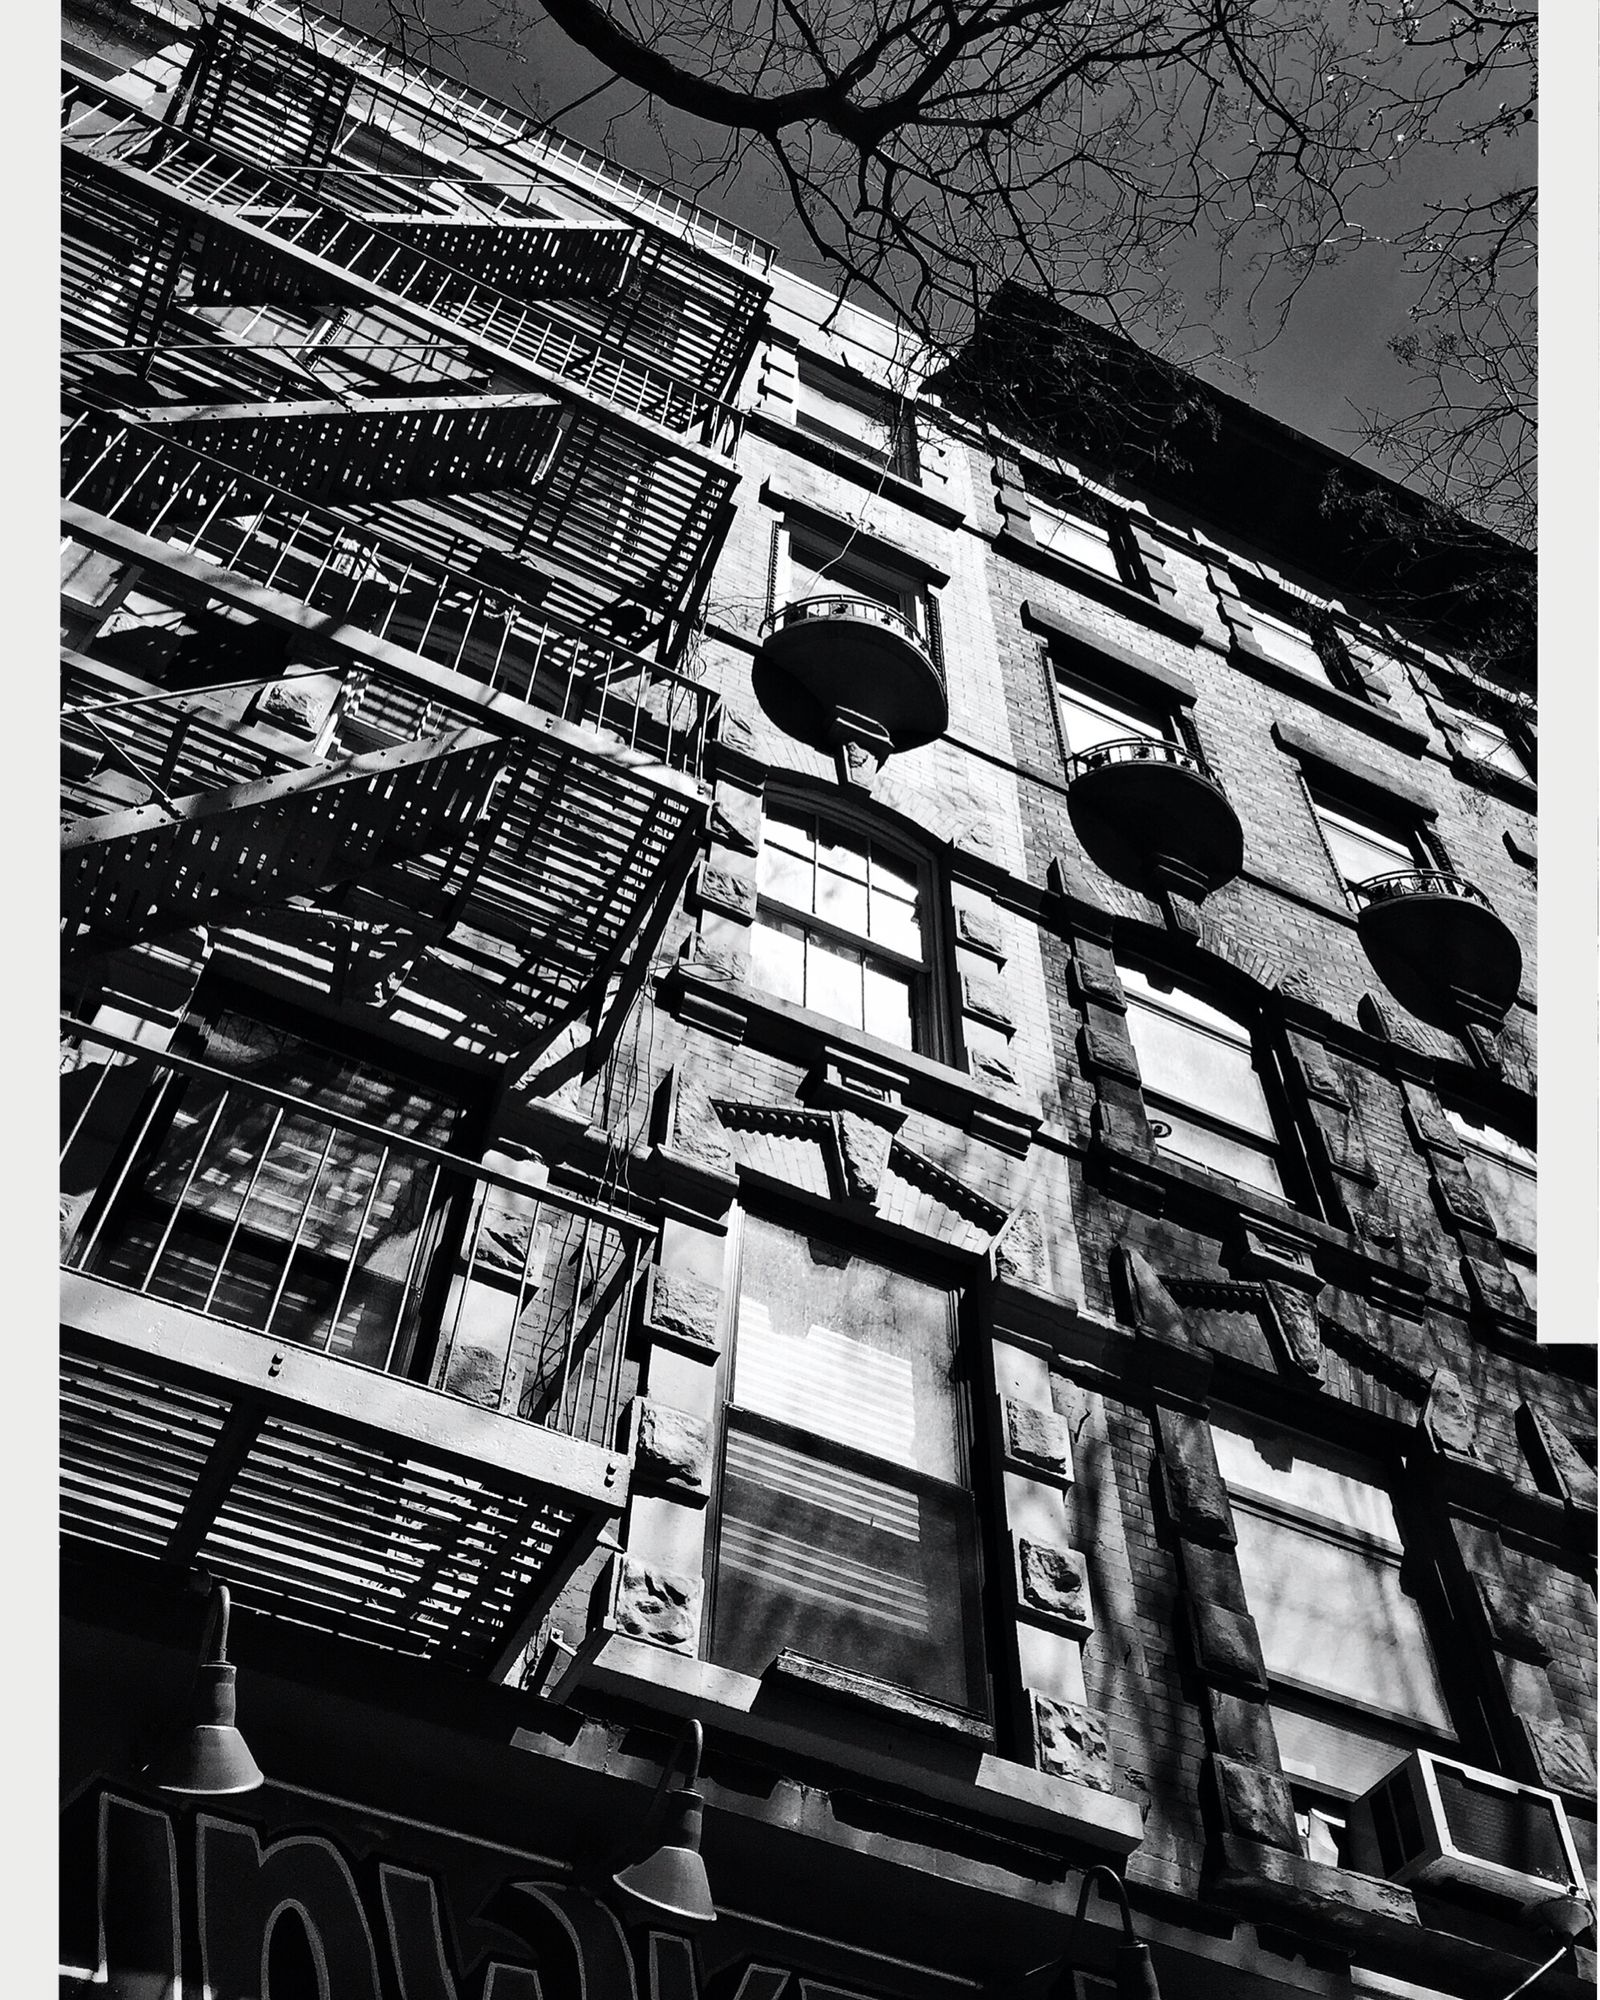 14th Street architecture rowhouse NYC streetscape fireescape